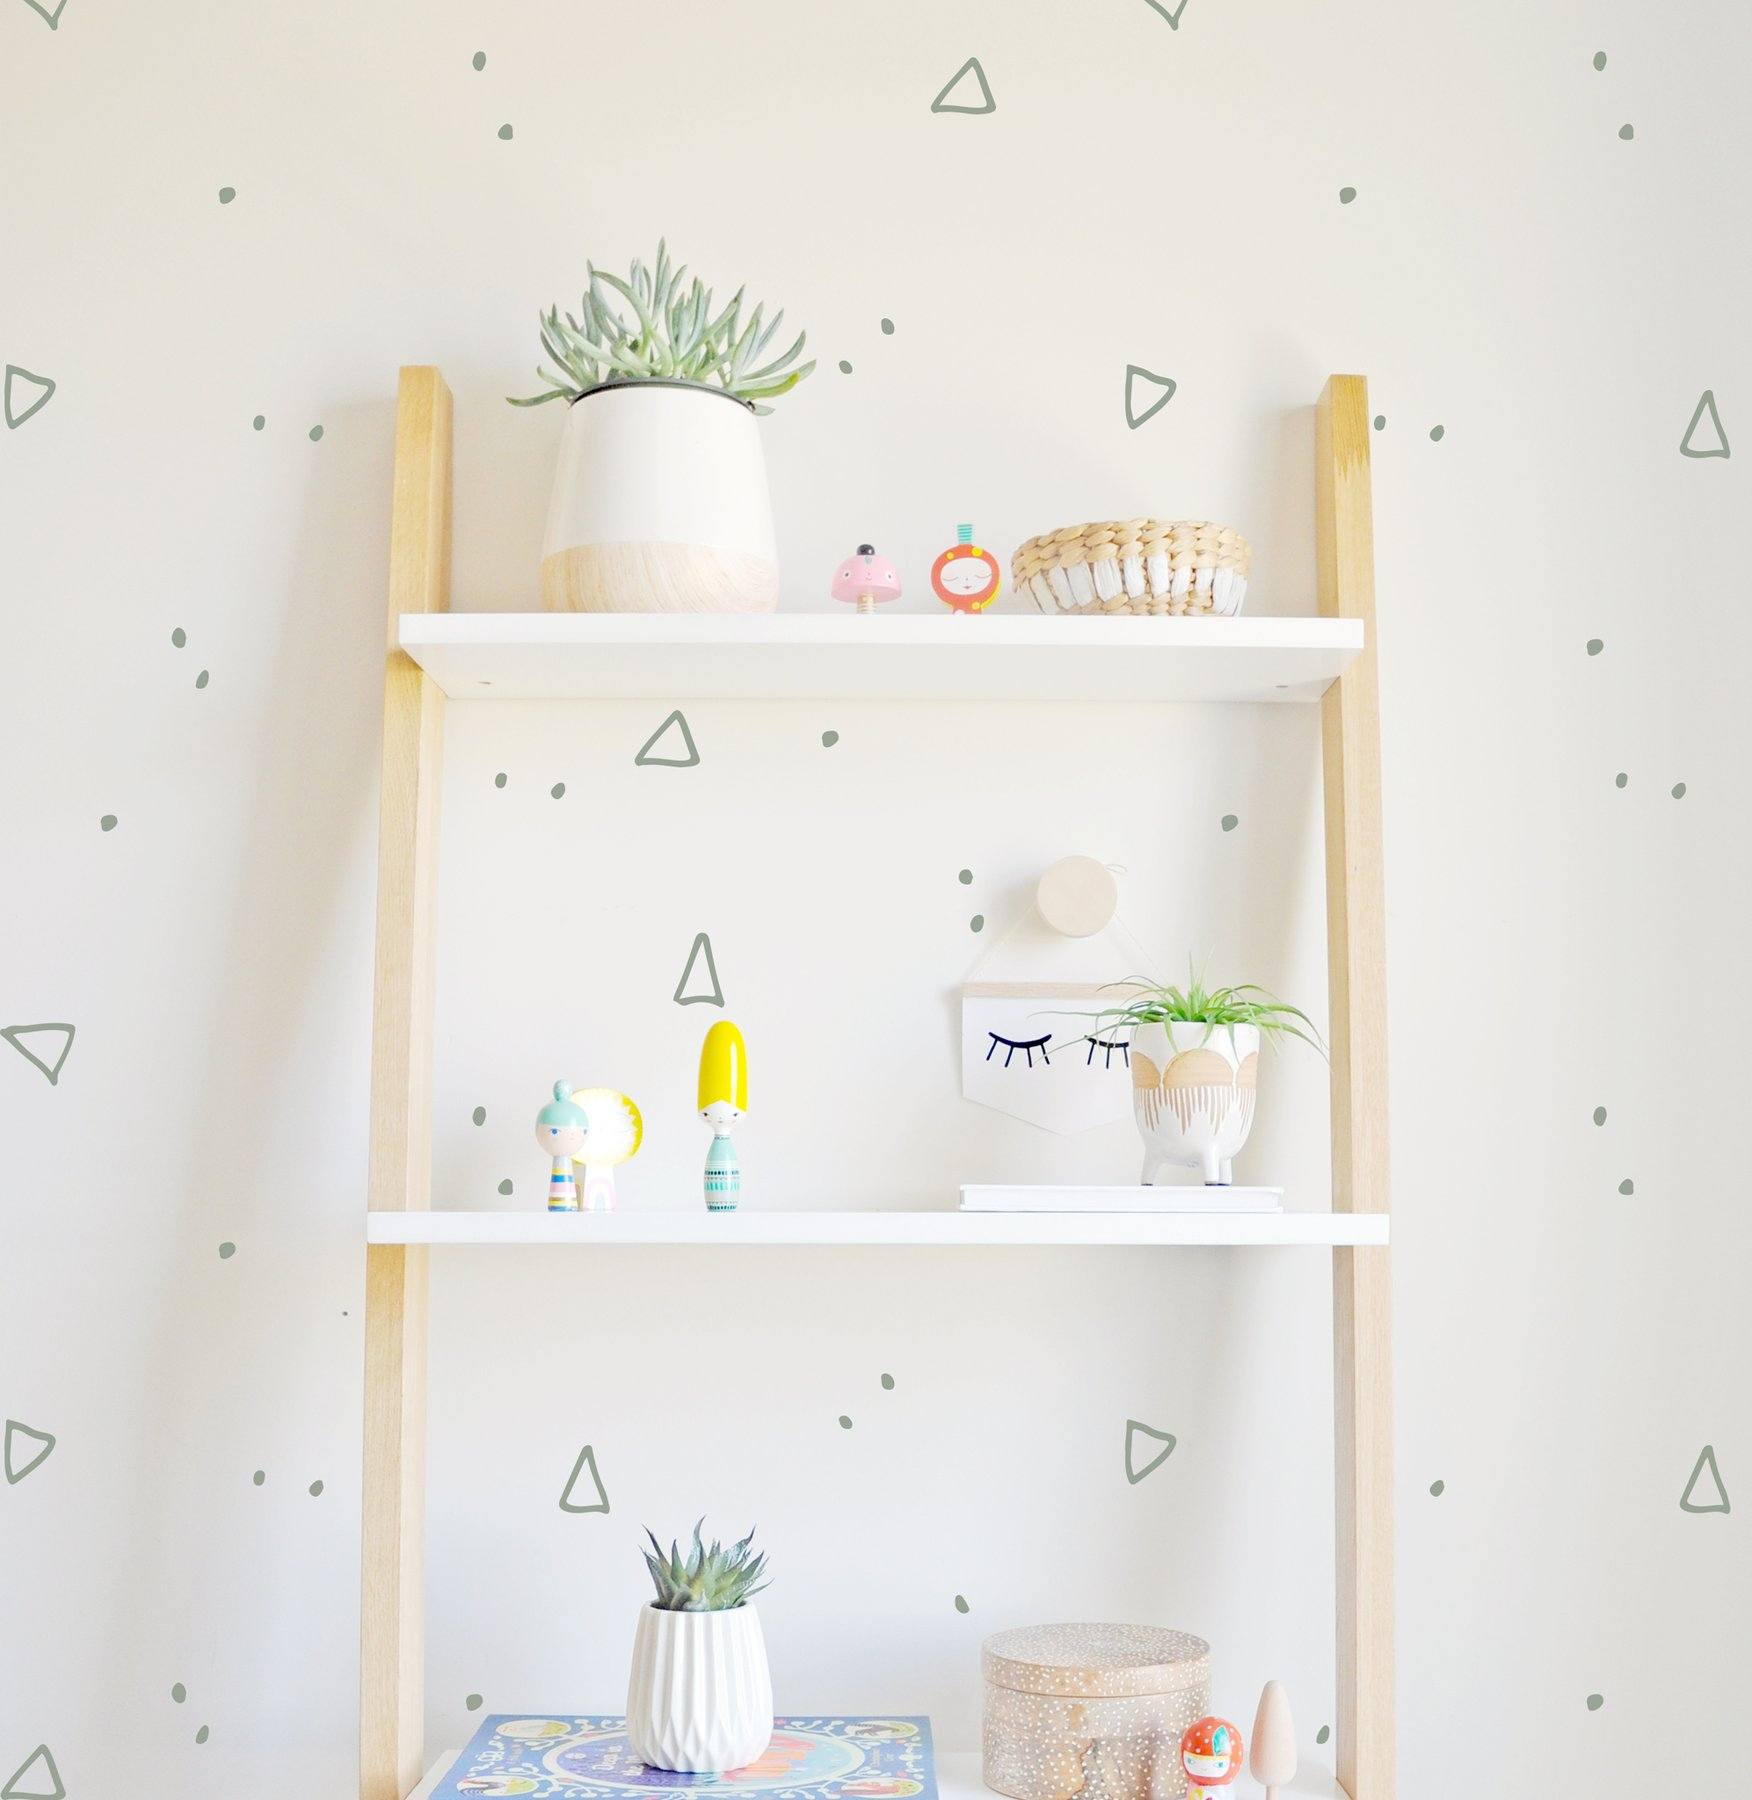 Hand Drawn Triangle and Dots Wall Decal - Project Nursery